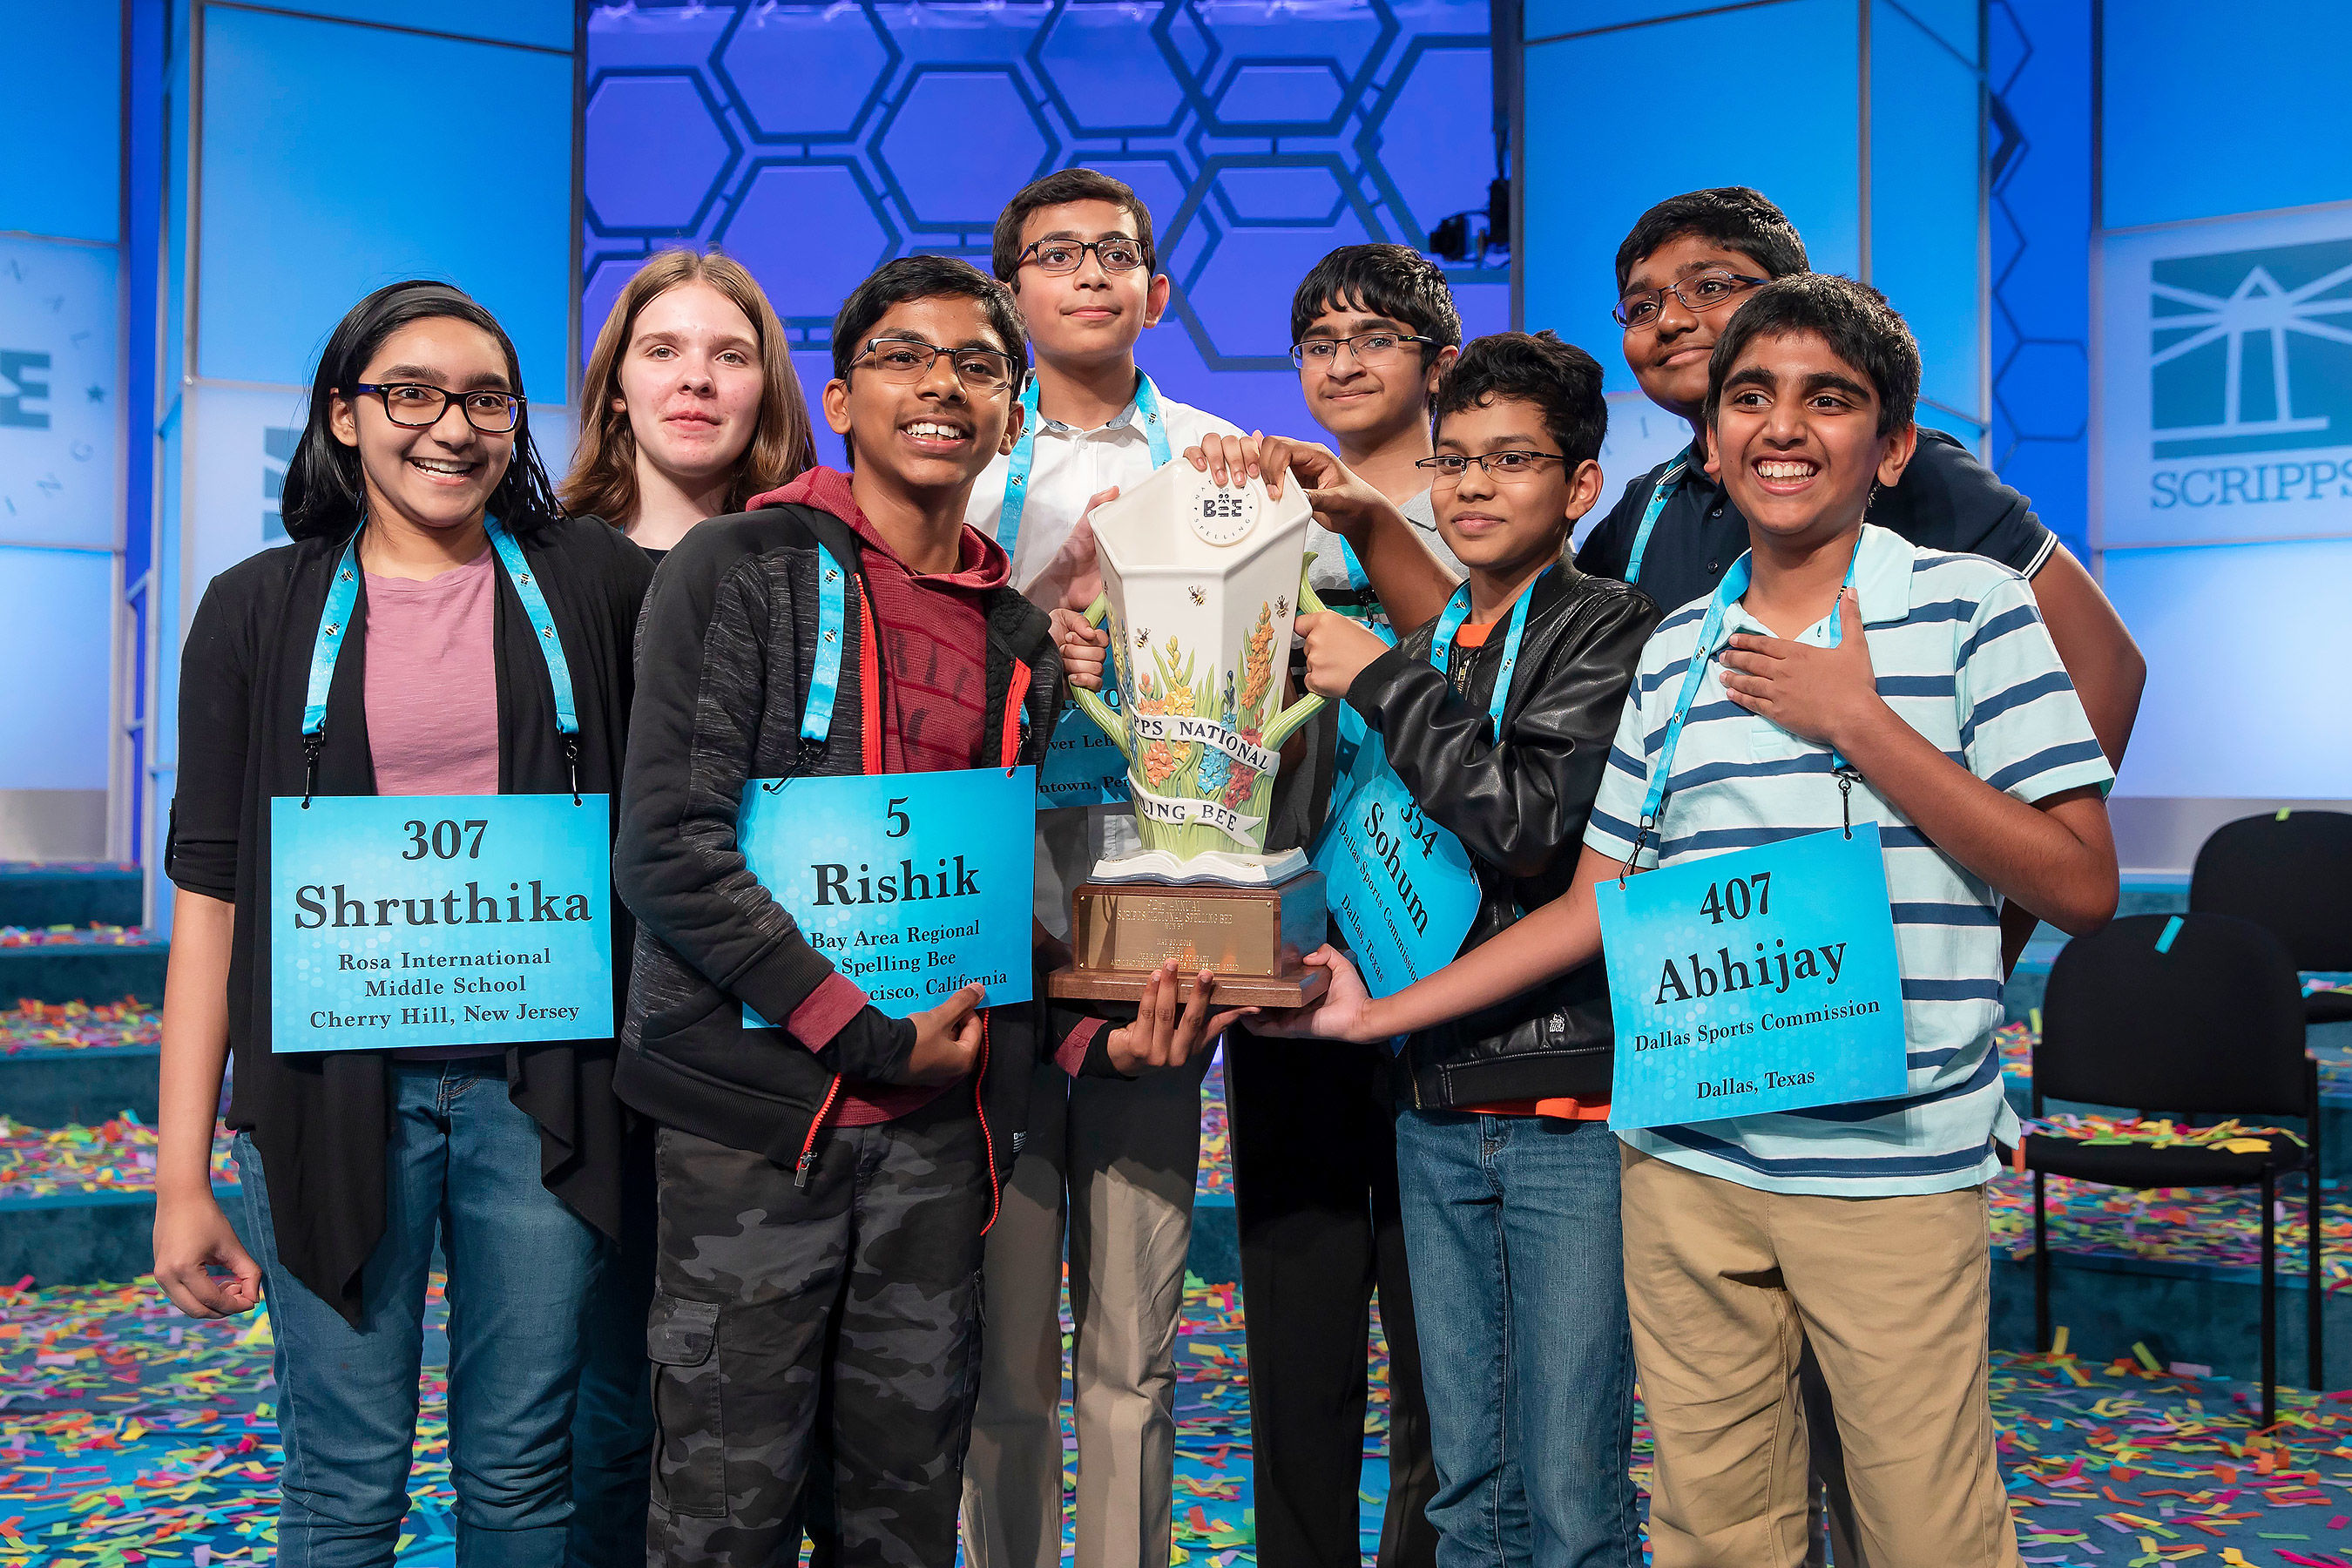 8 Spellers Just Won the 2019 National Spelling Bee in an Unprecedented Tie